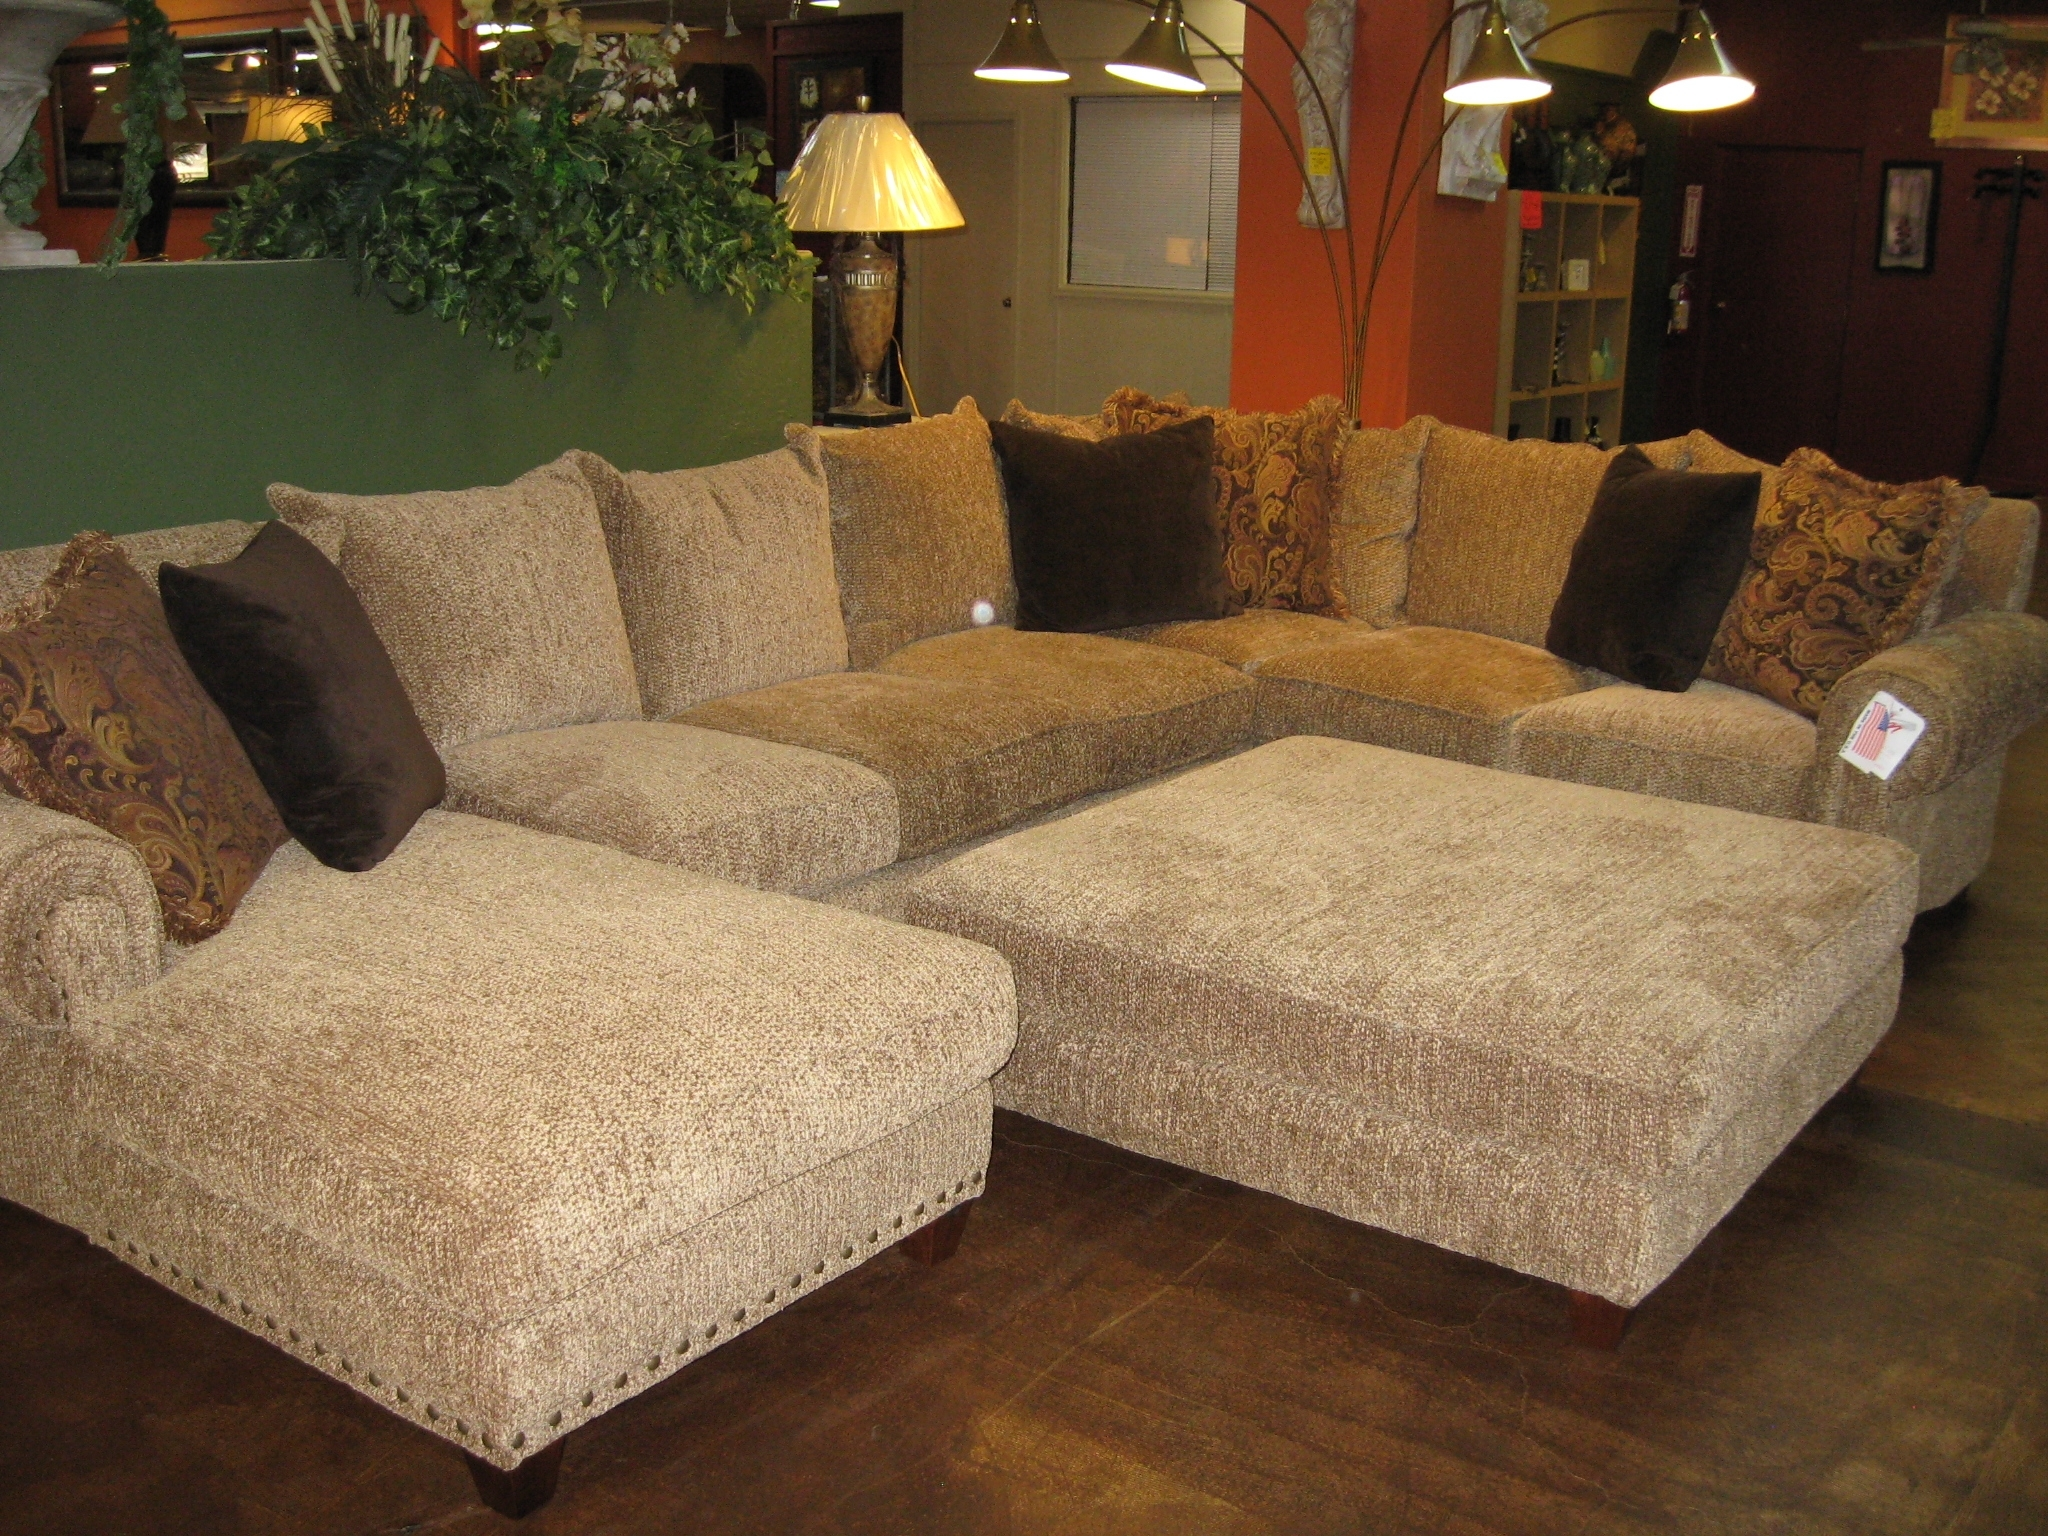 Sectional Sofa With Chaise And Ottoman – Hotelsbacau Regarding Sectionals With Chaise And Ottoman (Image 7 of 10)